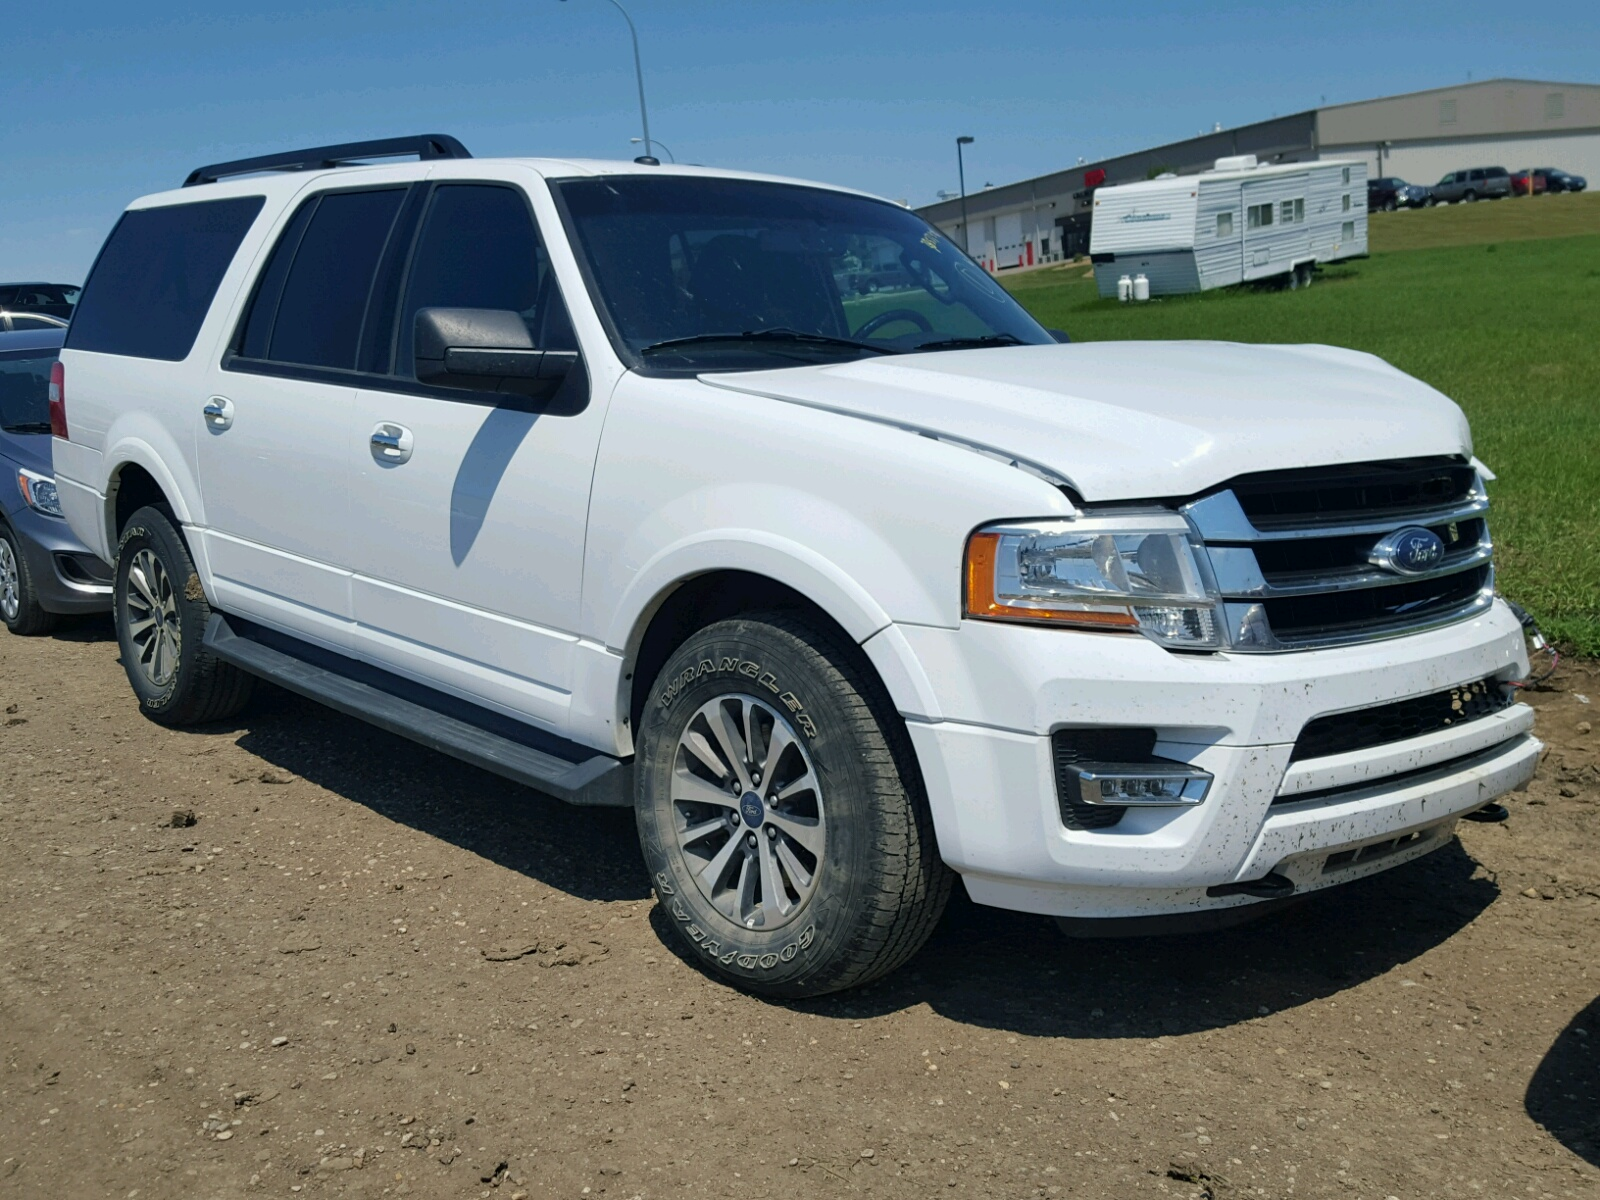 2017 Ford Expedition for sale at Copart Billings MT Lot